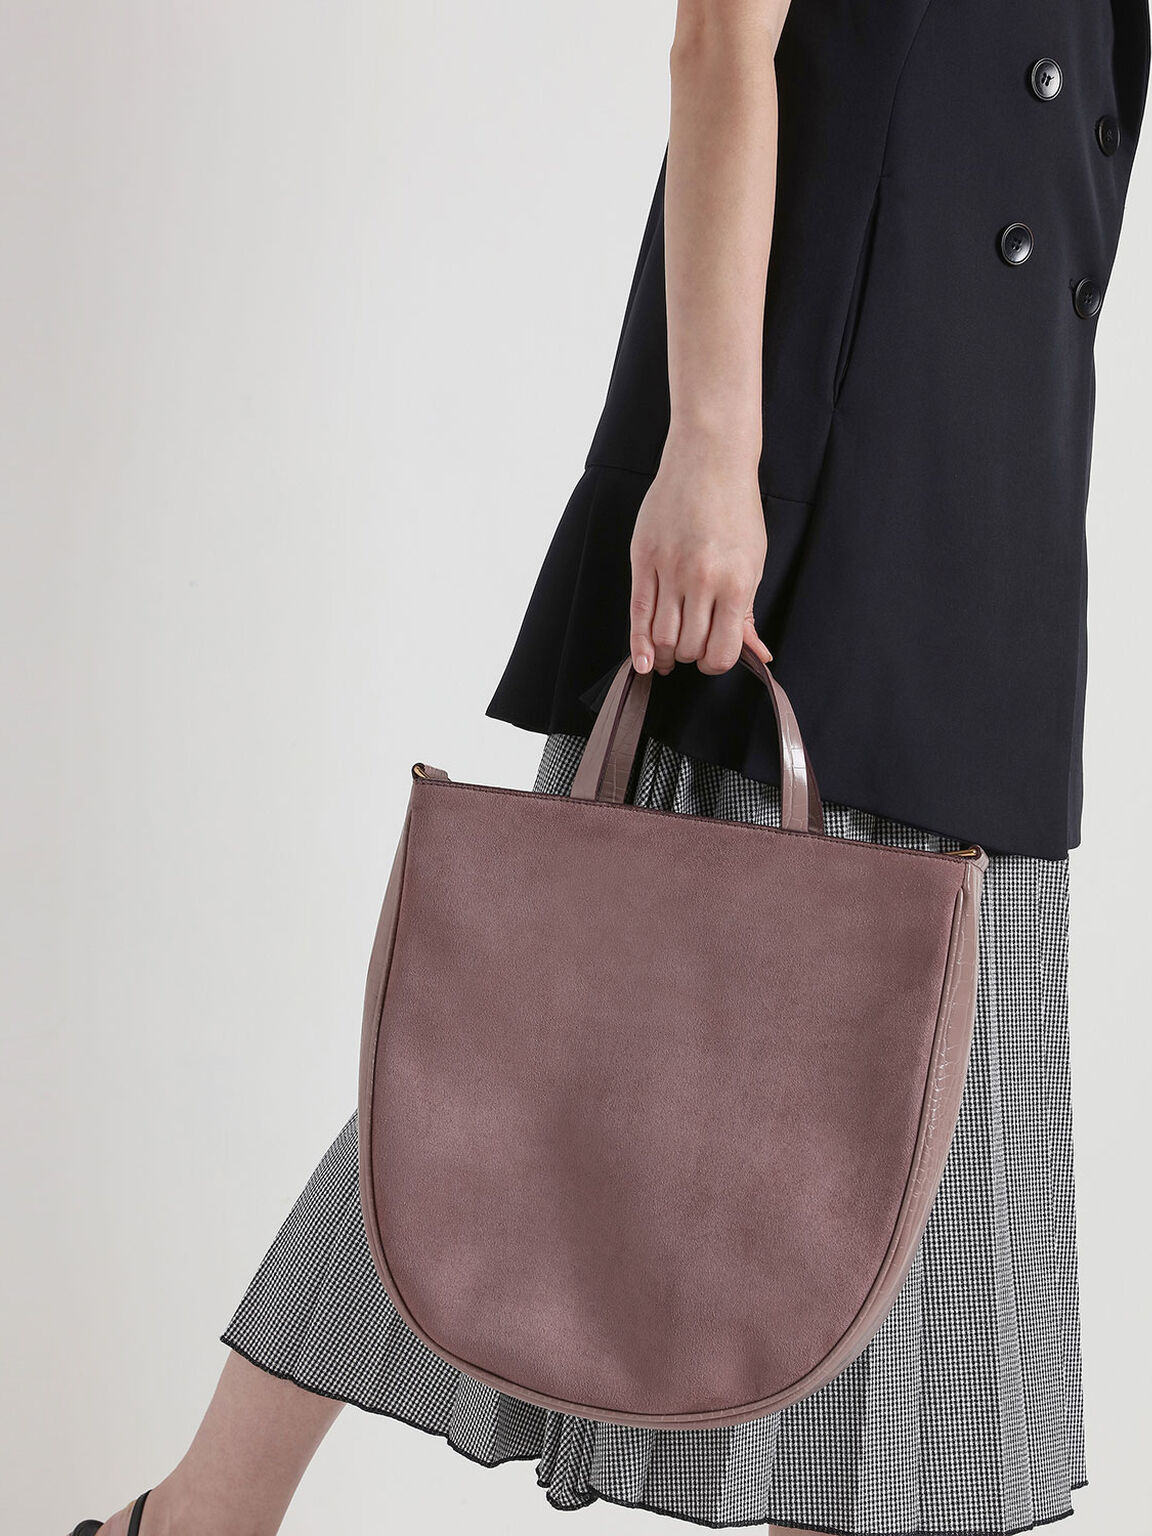 Textured U-Shaped Tote Bag, Mauve, hi-res